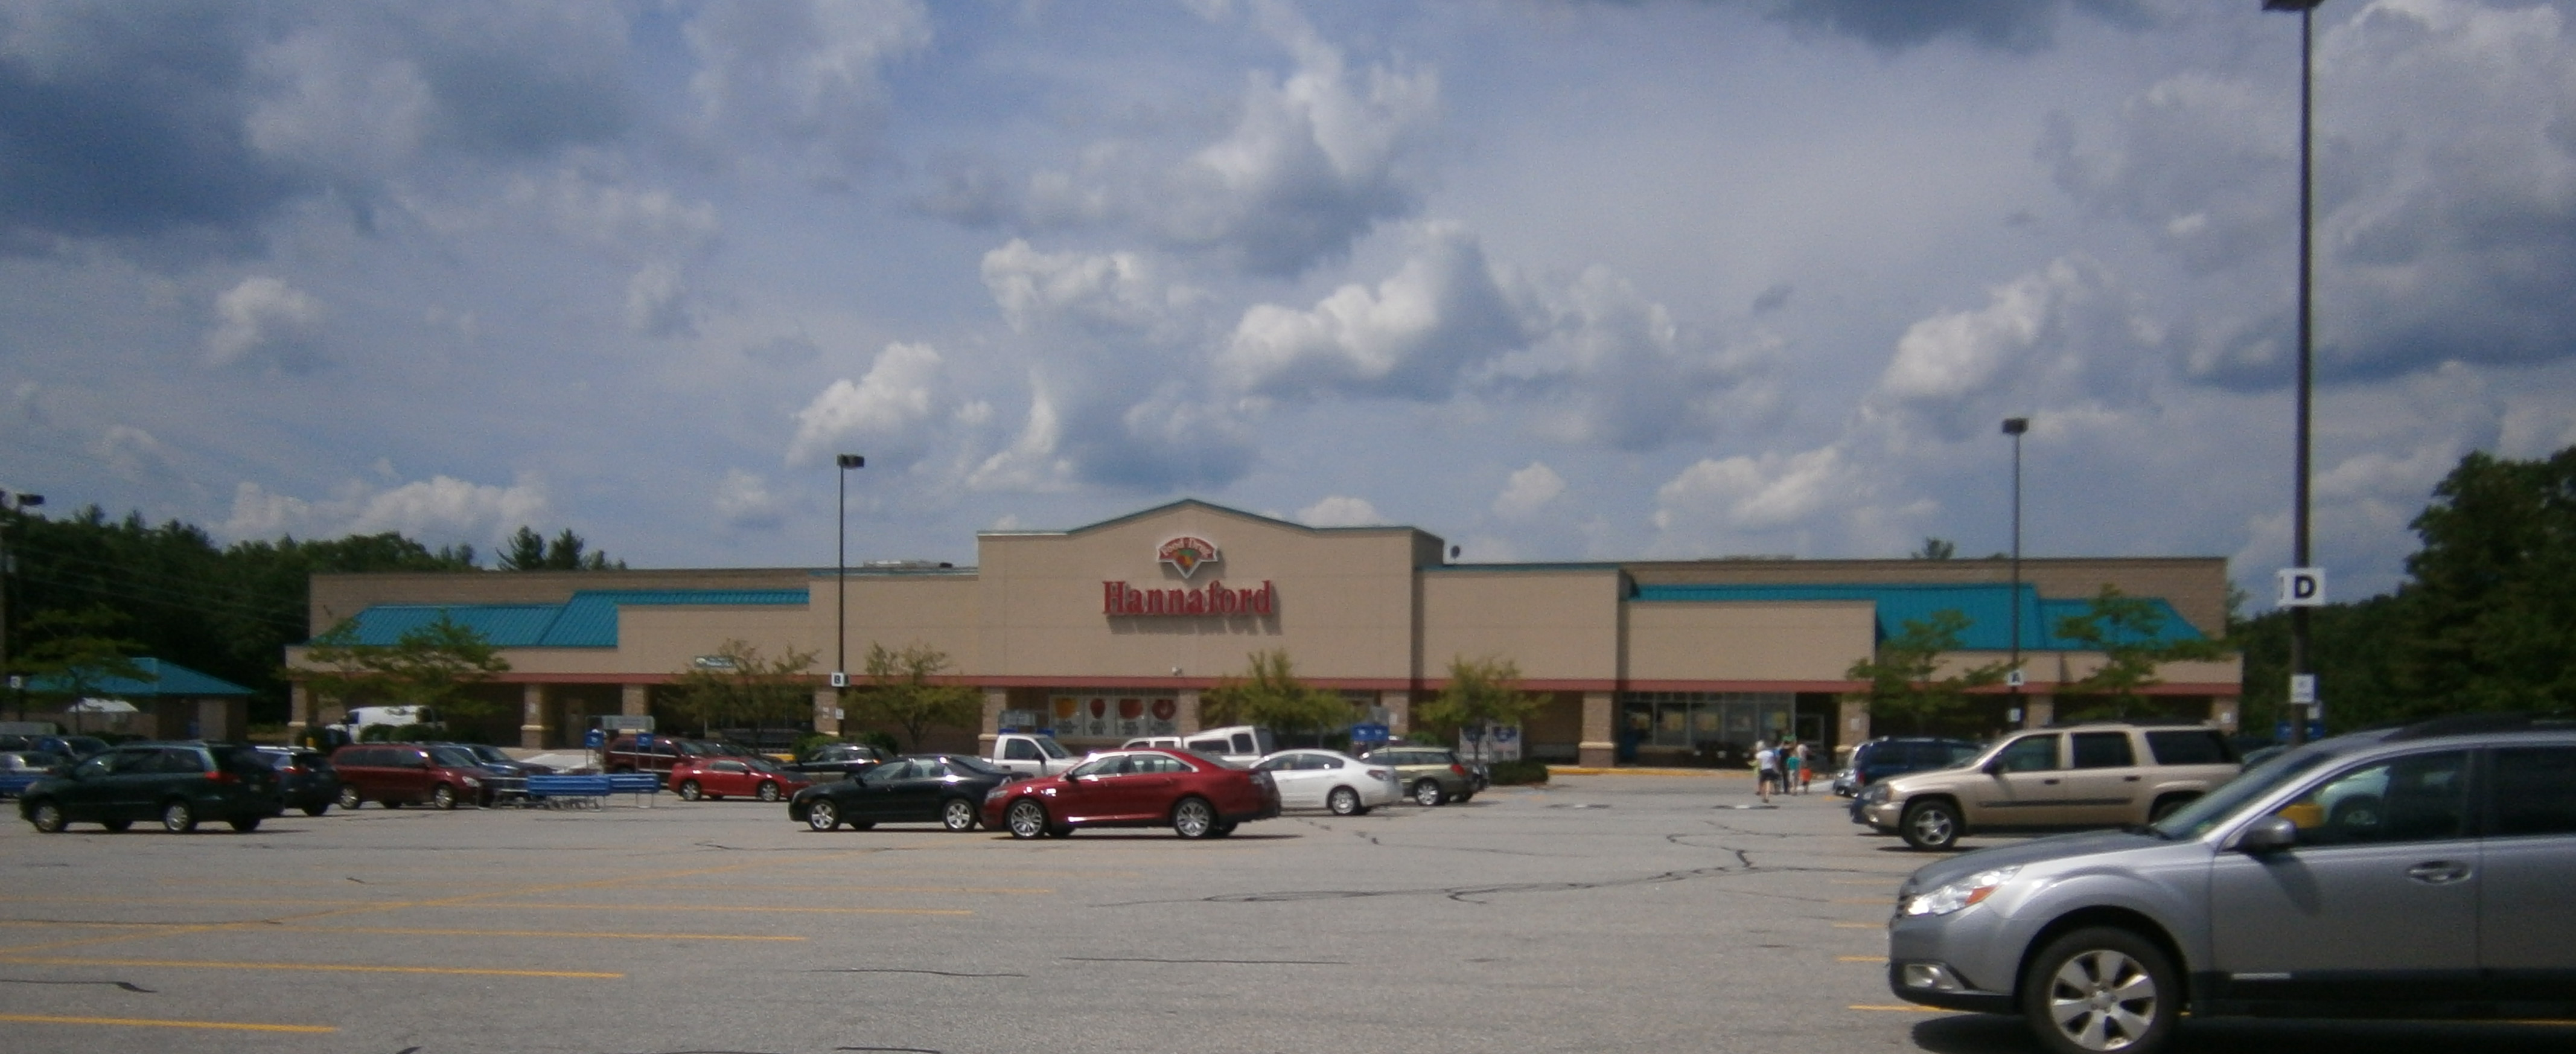 Hannafords.JPG-w4268.jpg